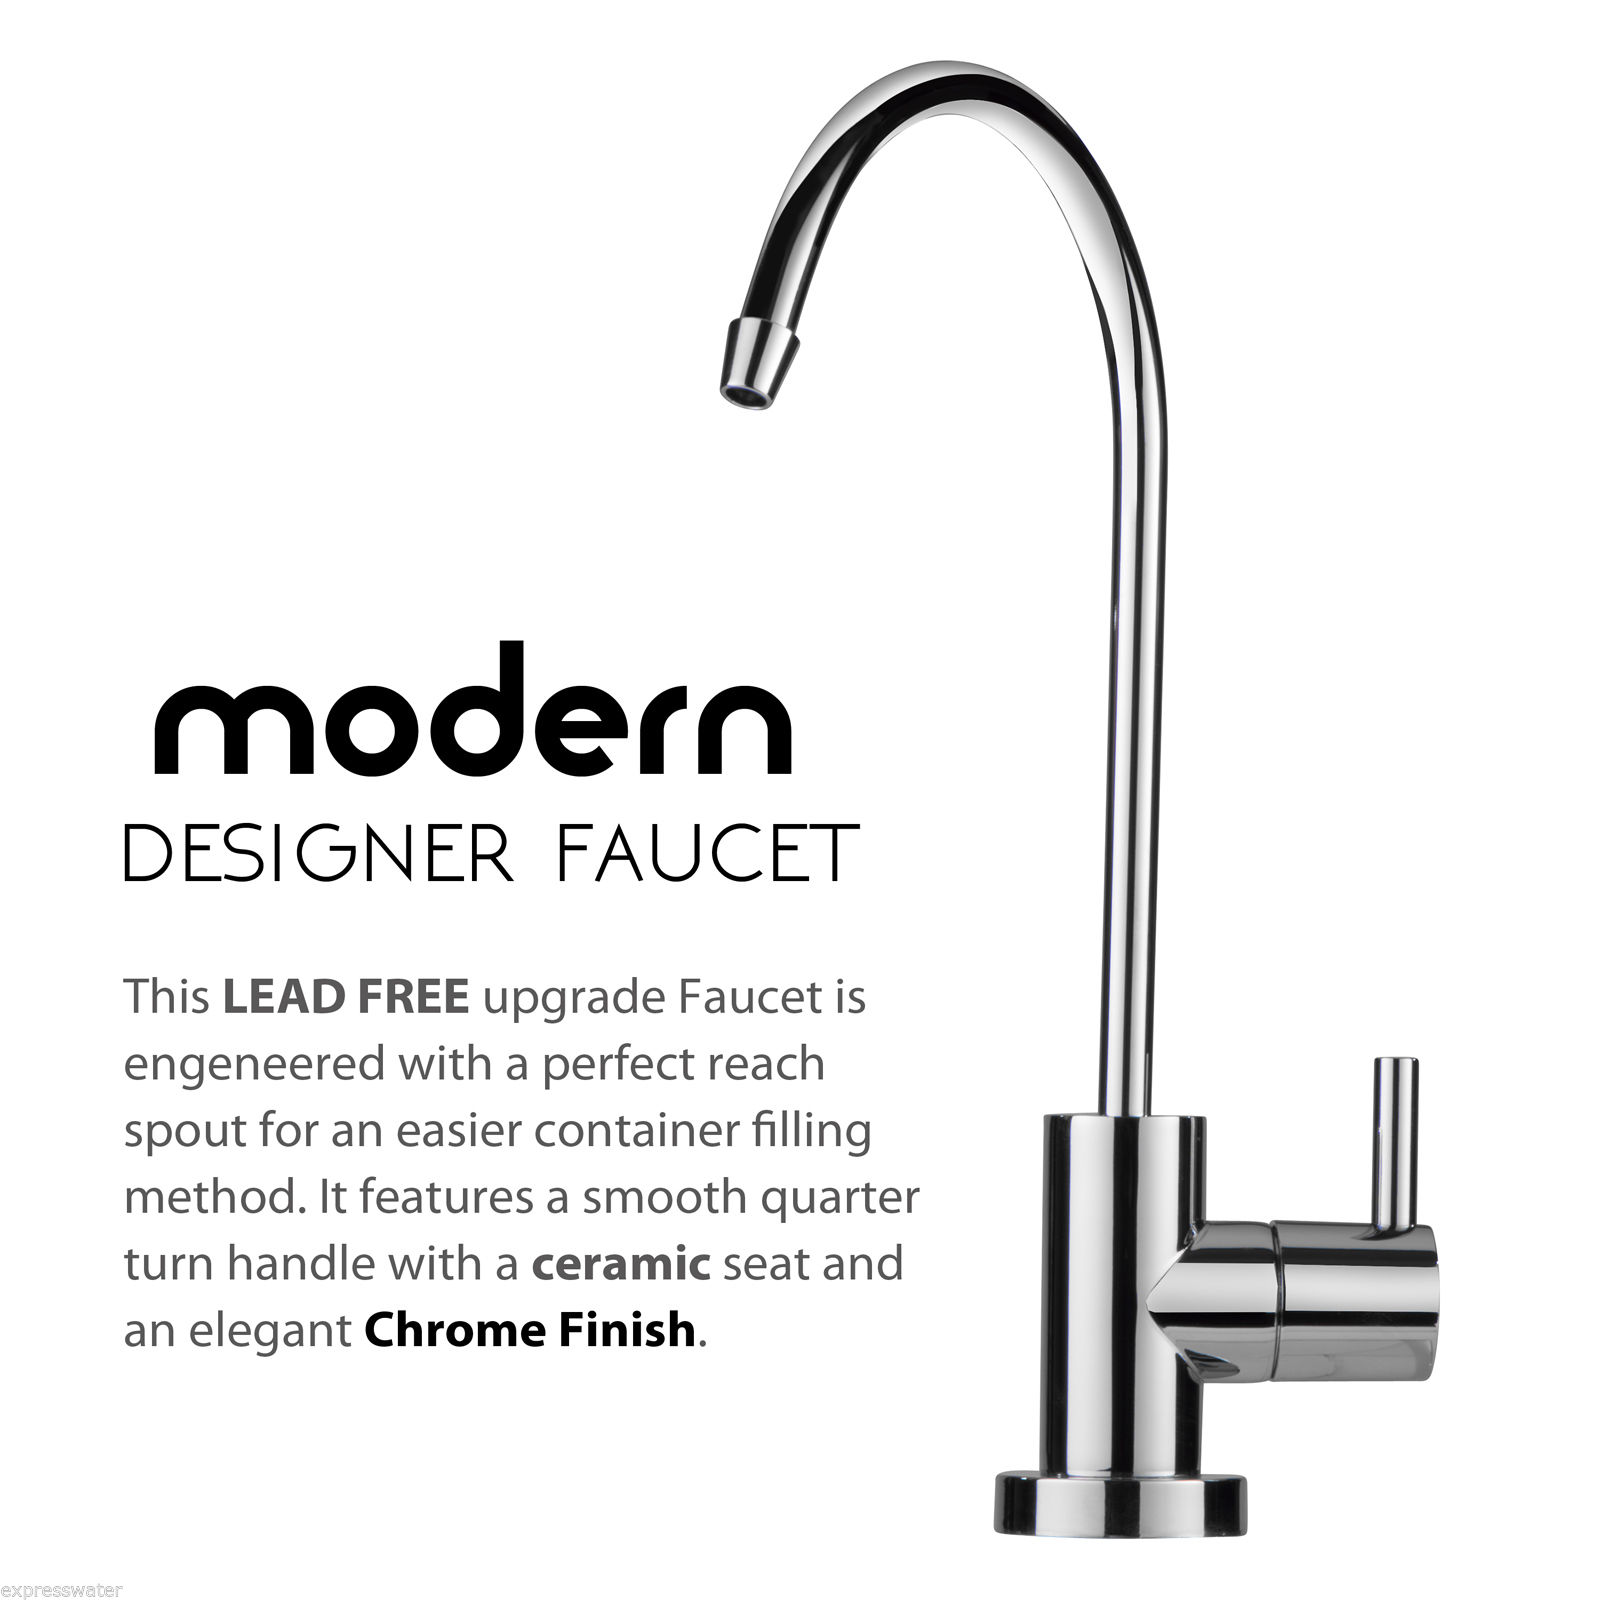 faucets ispring faucet overstock osmosis for drinking reverse filter system free today shipping garden product water home filtration ro